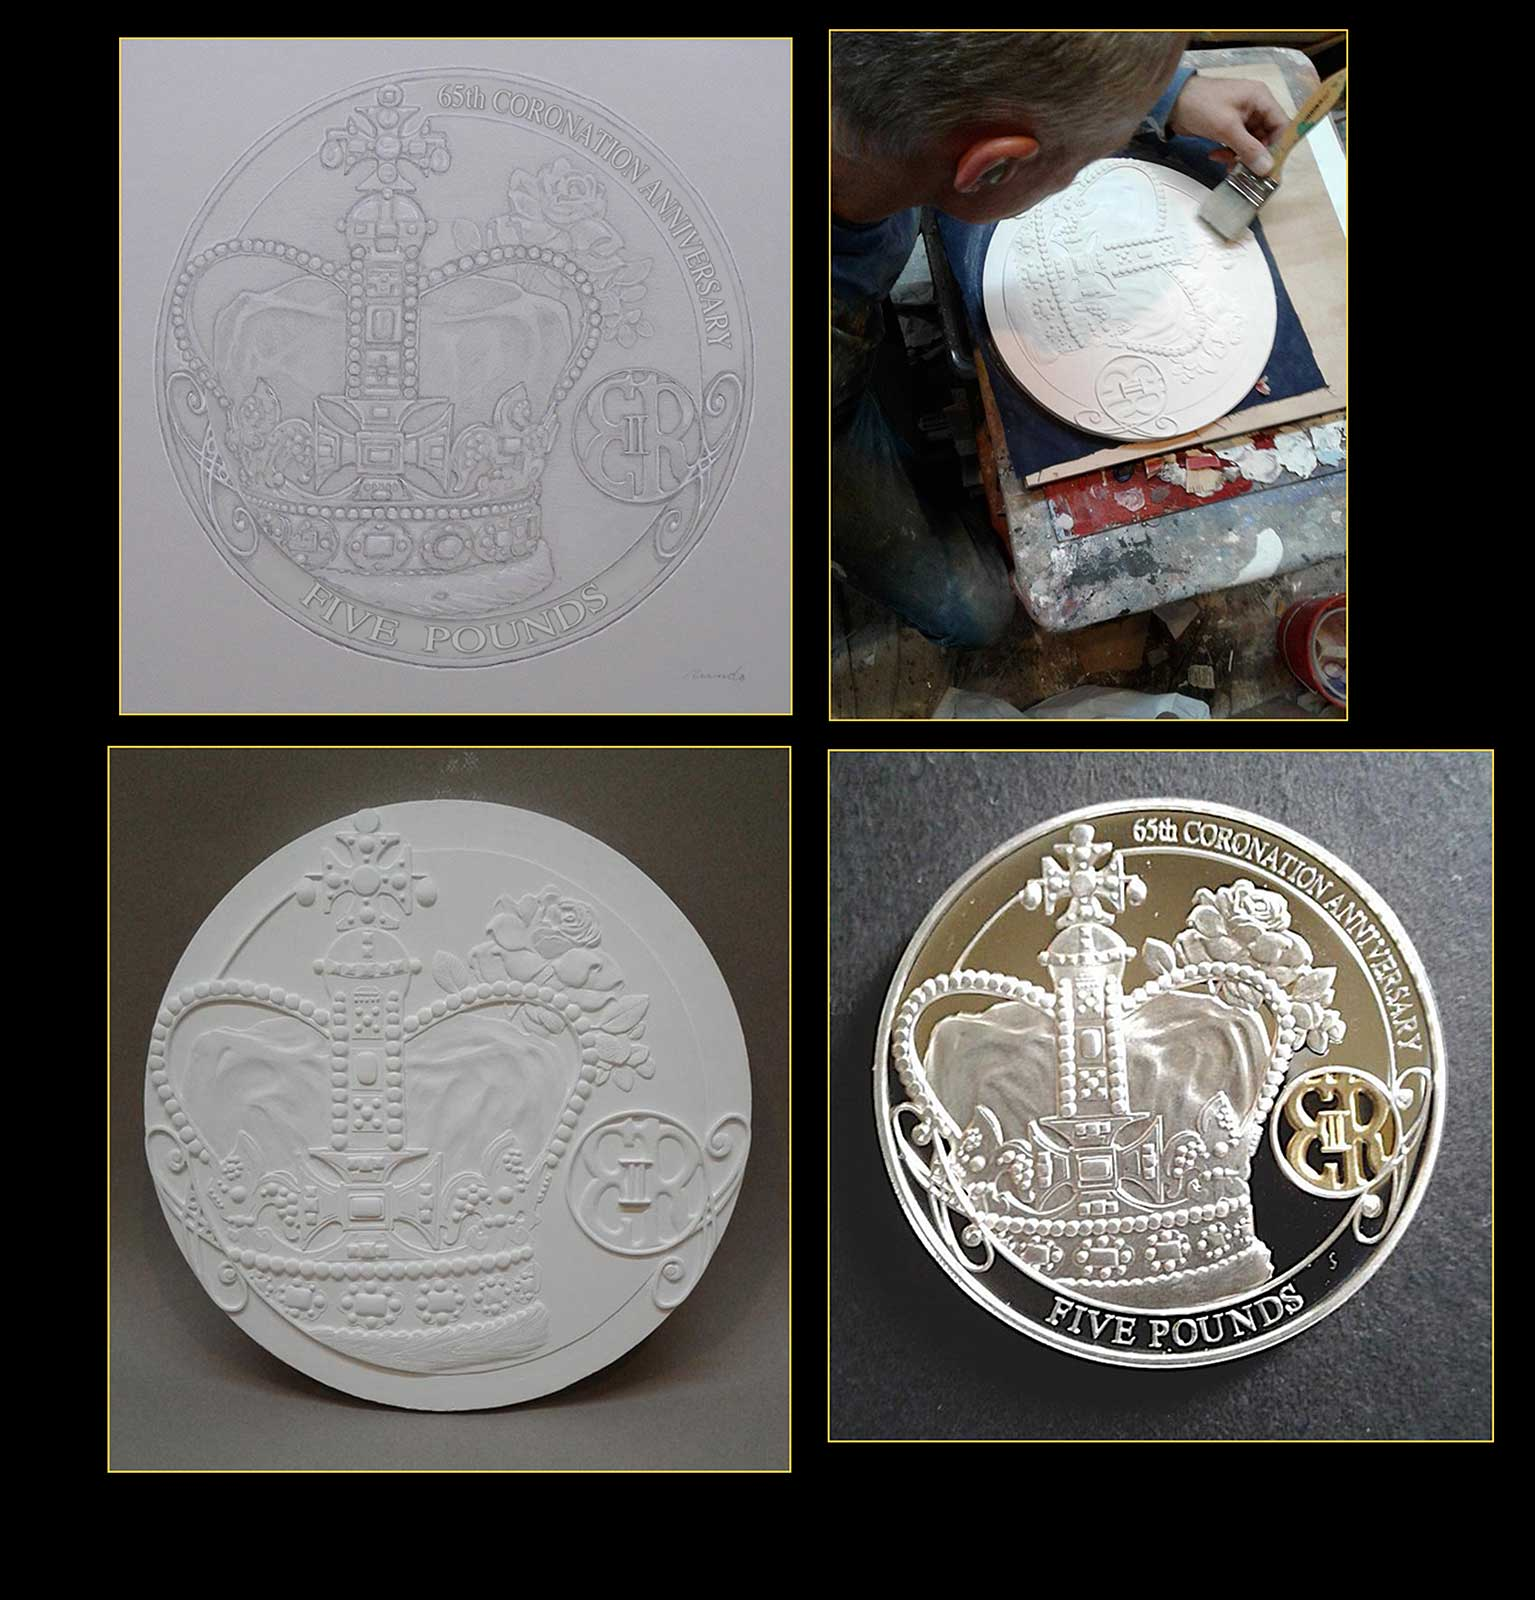 Ron Rundo / Coin / Queen Elizabeth 60th Anniversary / Westminster Collections